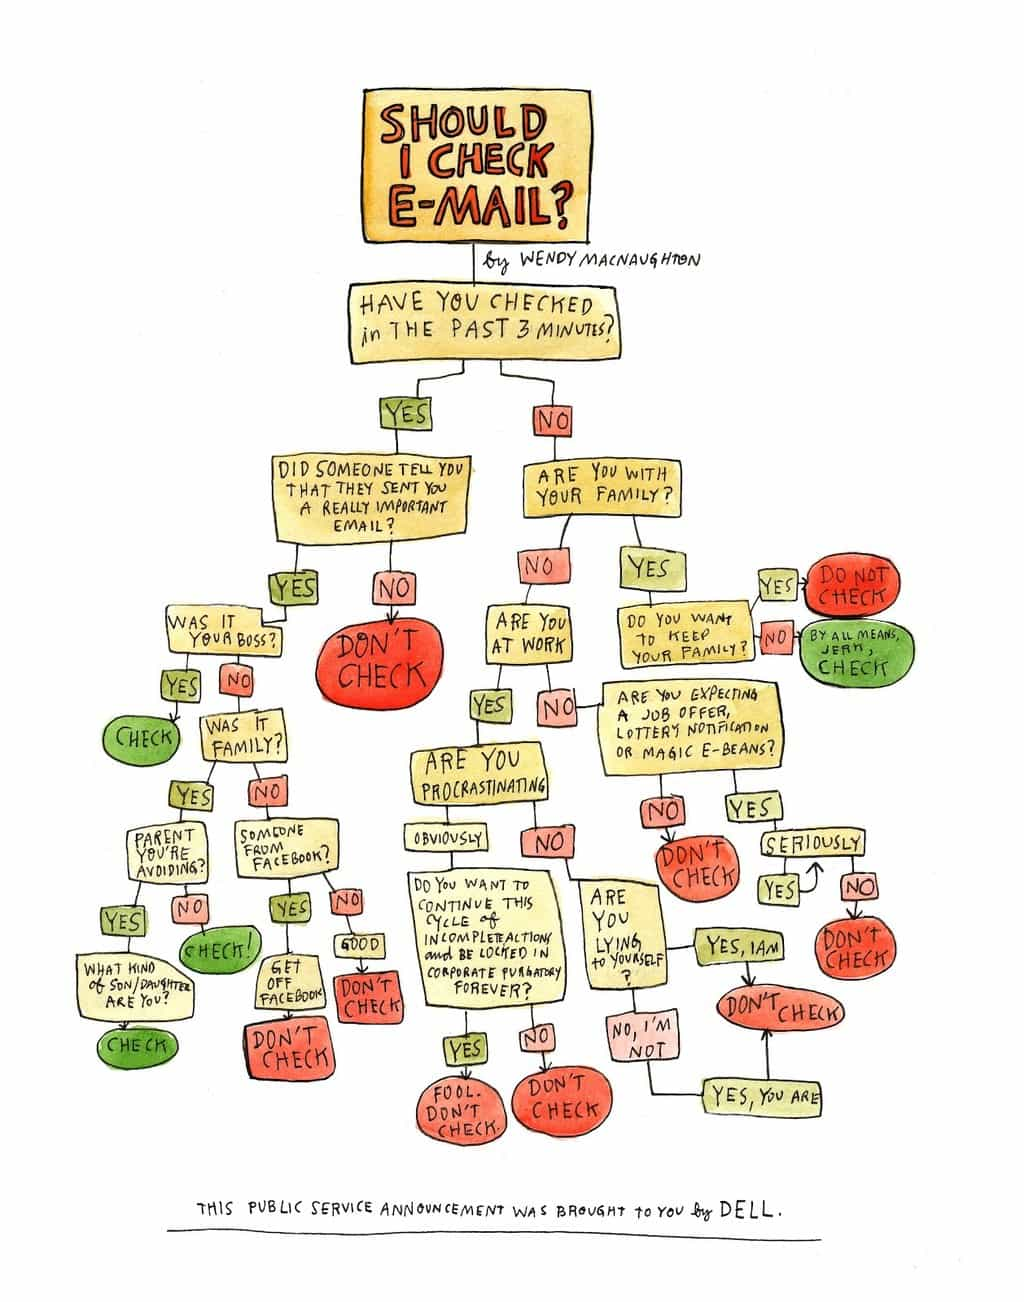 How to ensure that you are not checking email too frequently